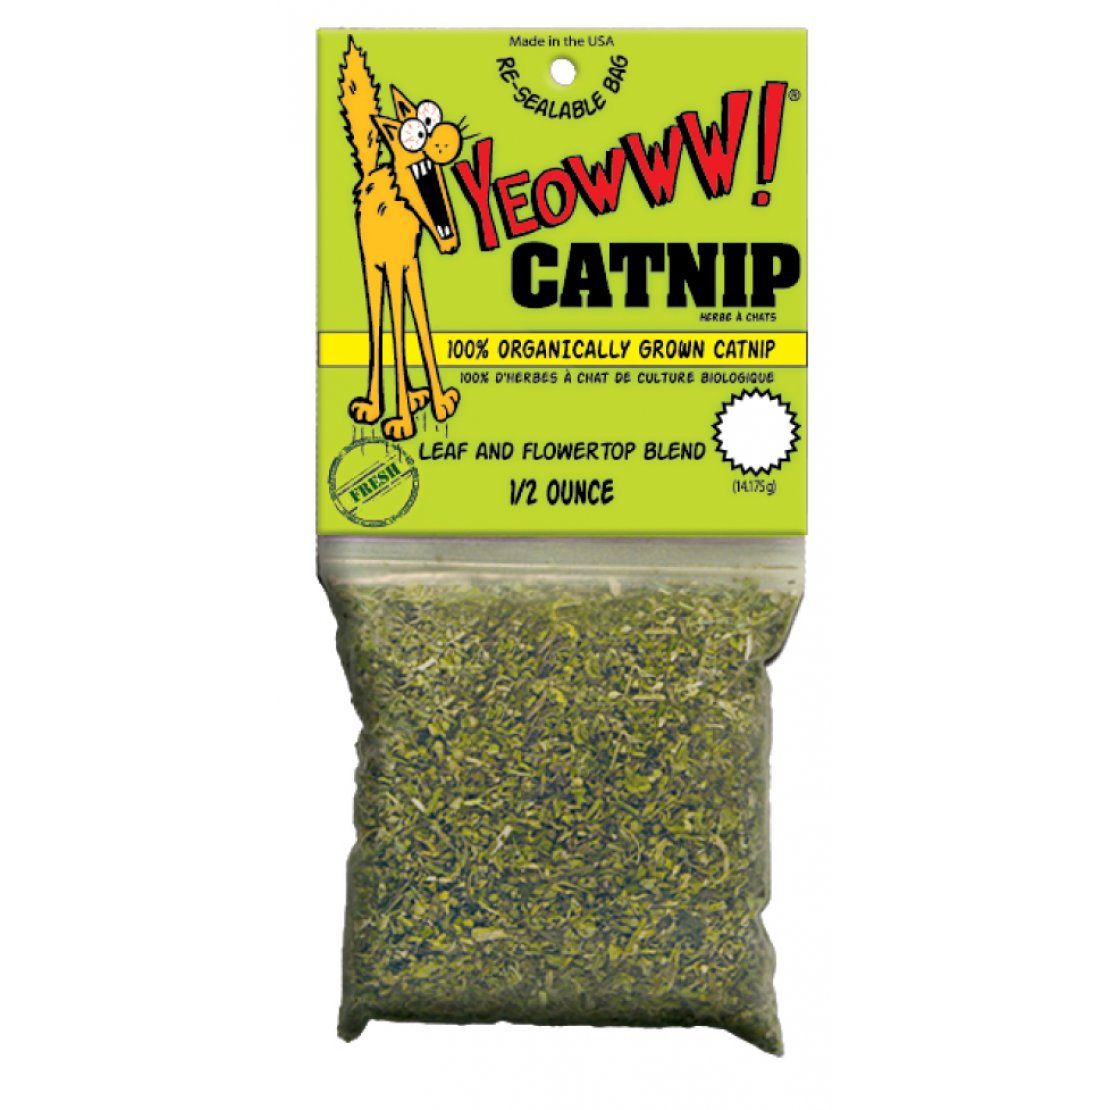 Yeowww Catnip Bag - Pica's Pets